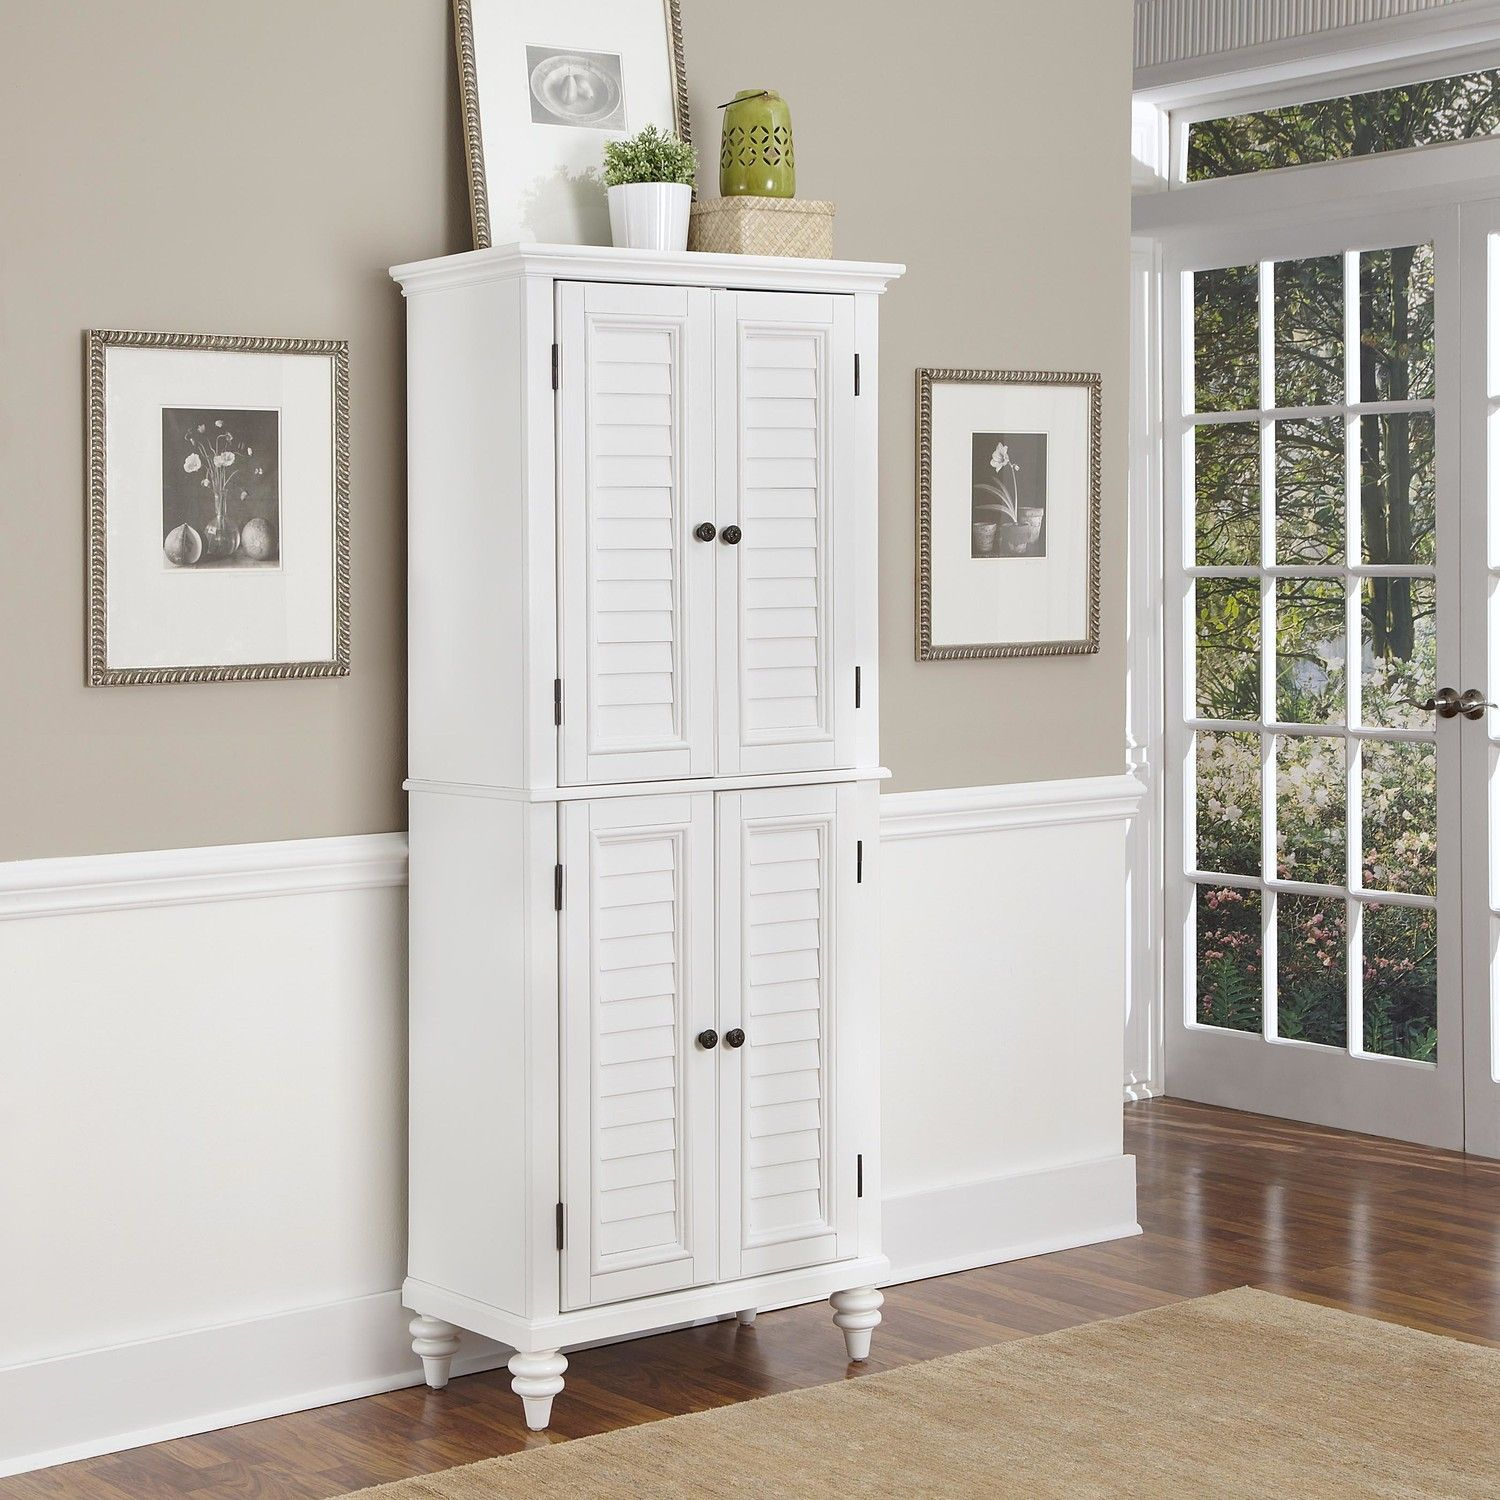 Door Pantry Cabinet with Furniture Portable Kitchen